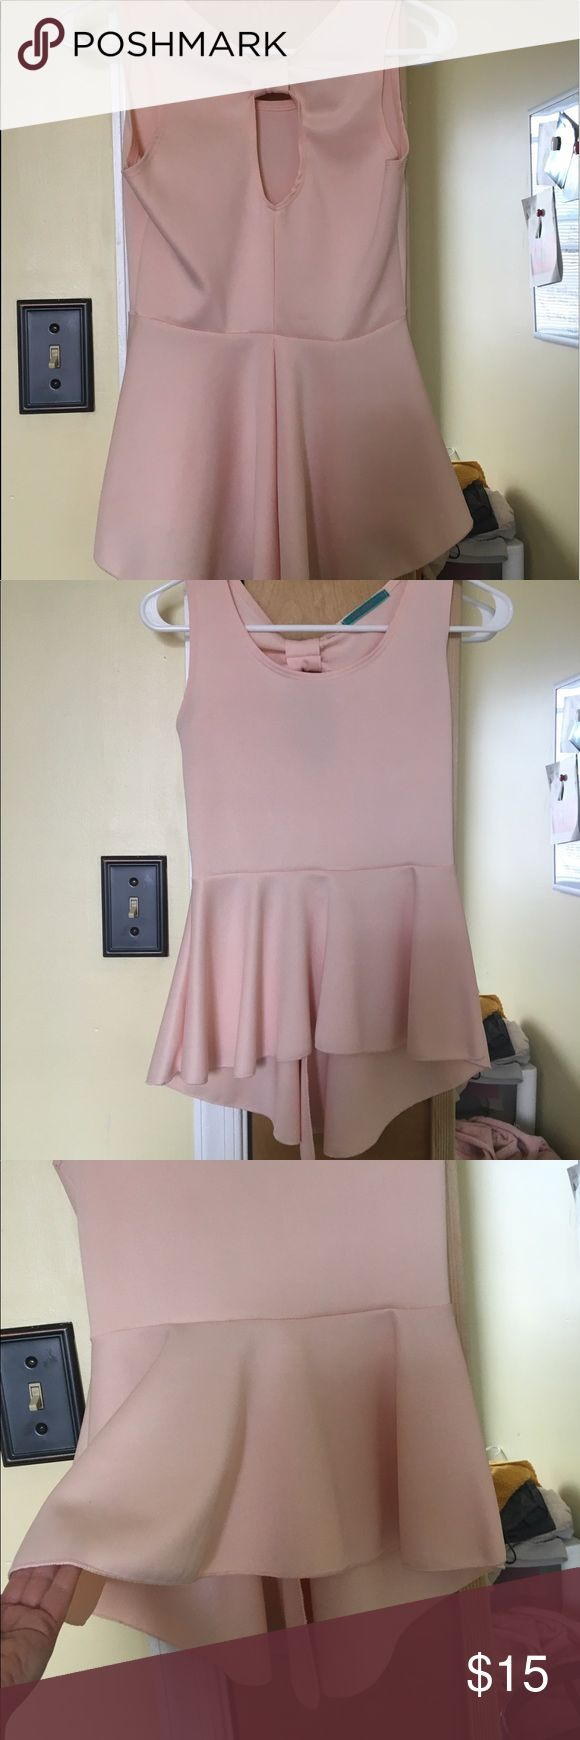 Semi-backless, hi-low, light pink peplum top 💕 Semi-backless, hi-low, light pink peplum top. Kinda looks like a bow in the back. Never worn. GREAT condition. Tops Tank Tops